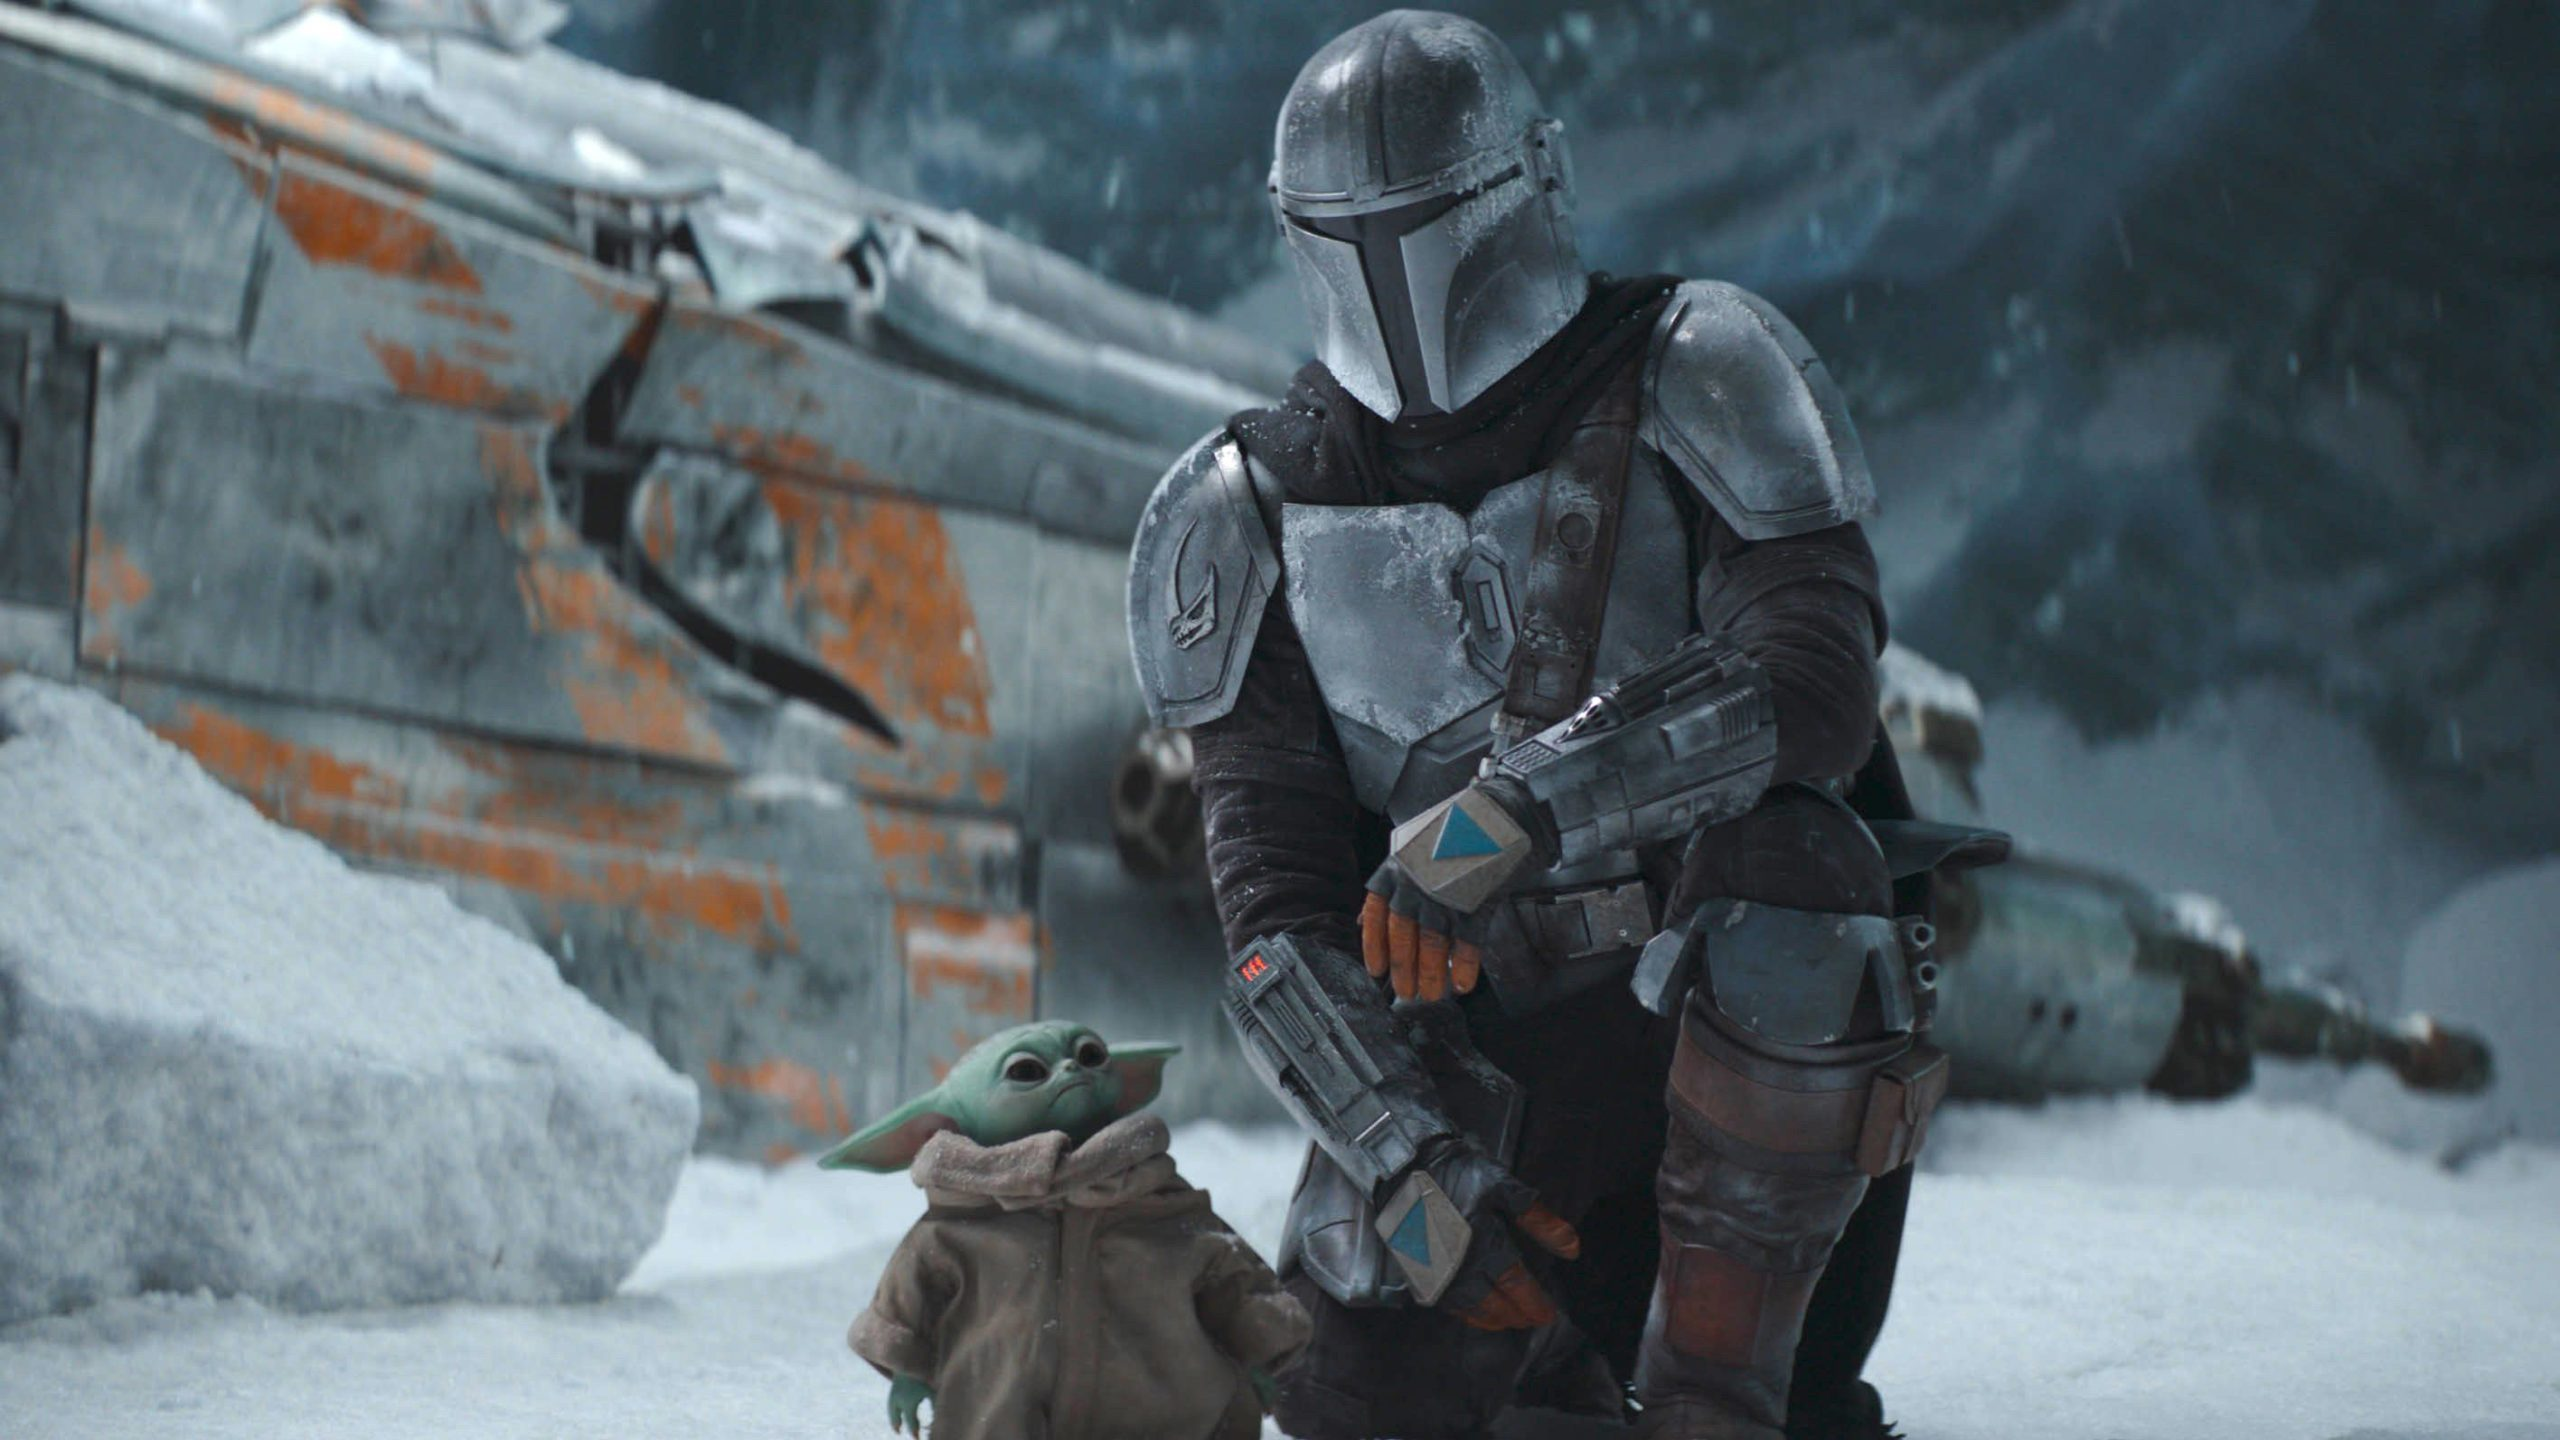 The Mandalorian Season 2 Episode 2 Release Date and Trailer